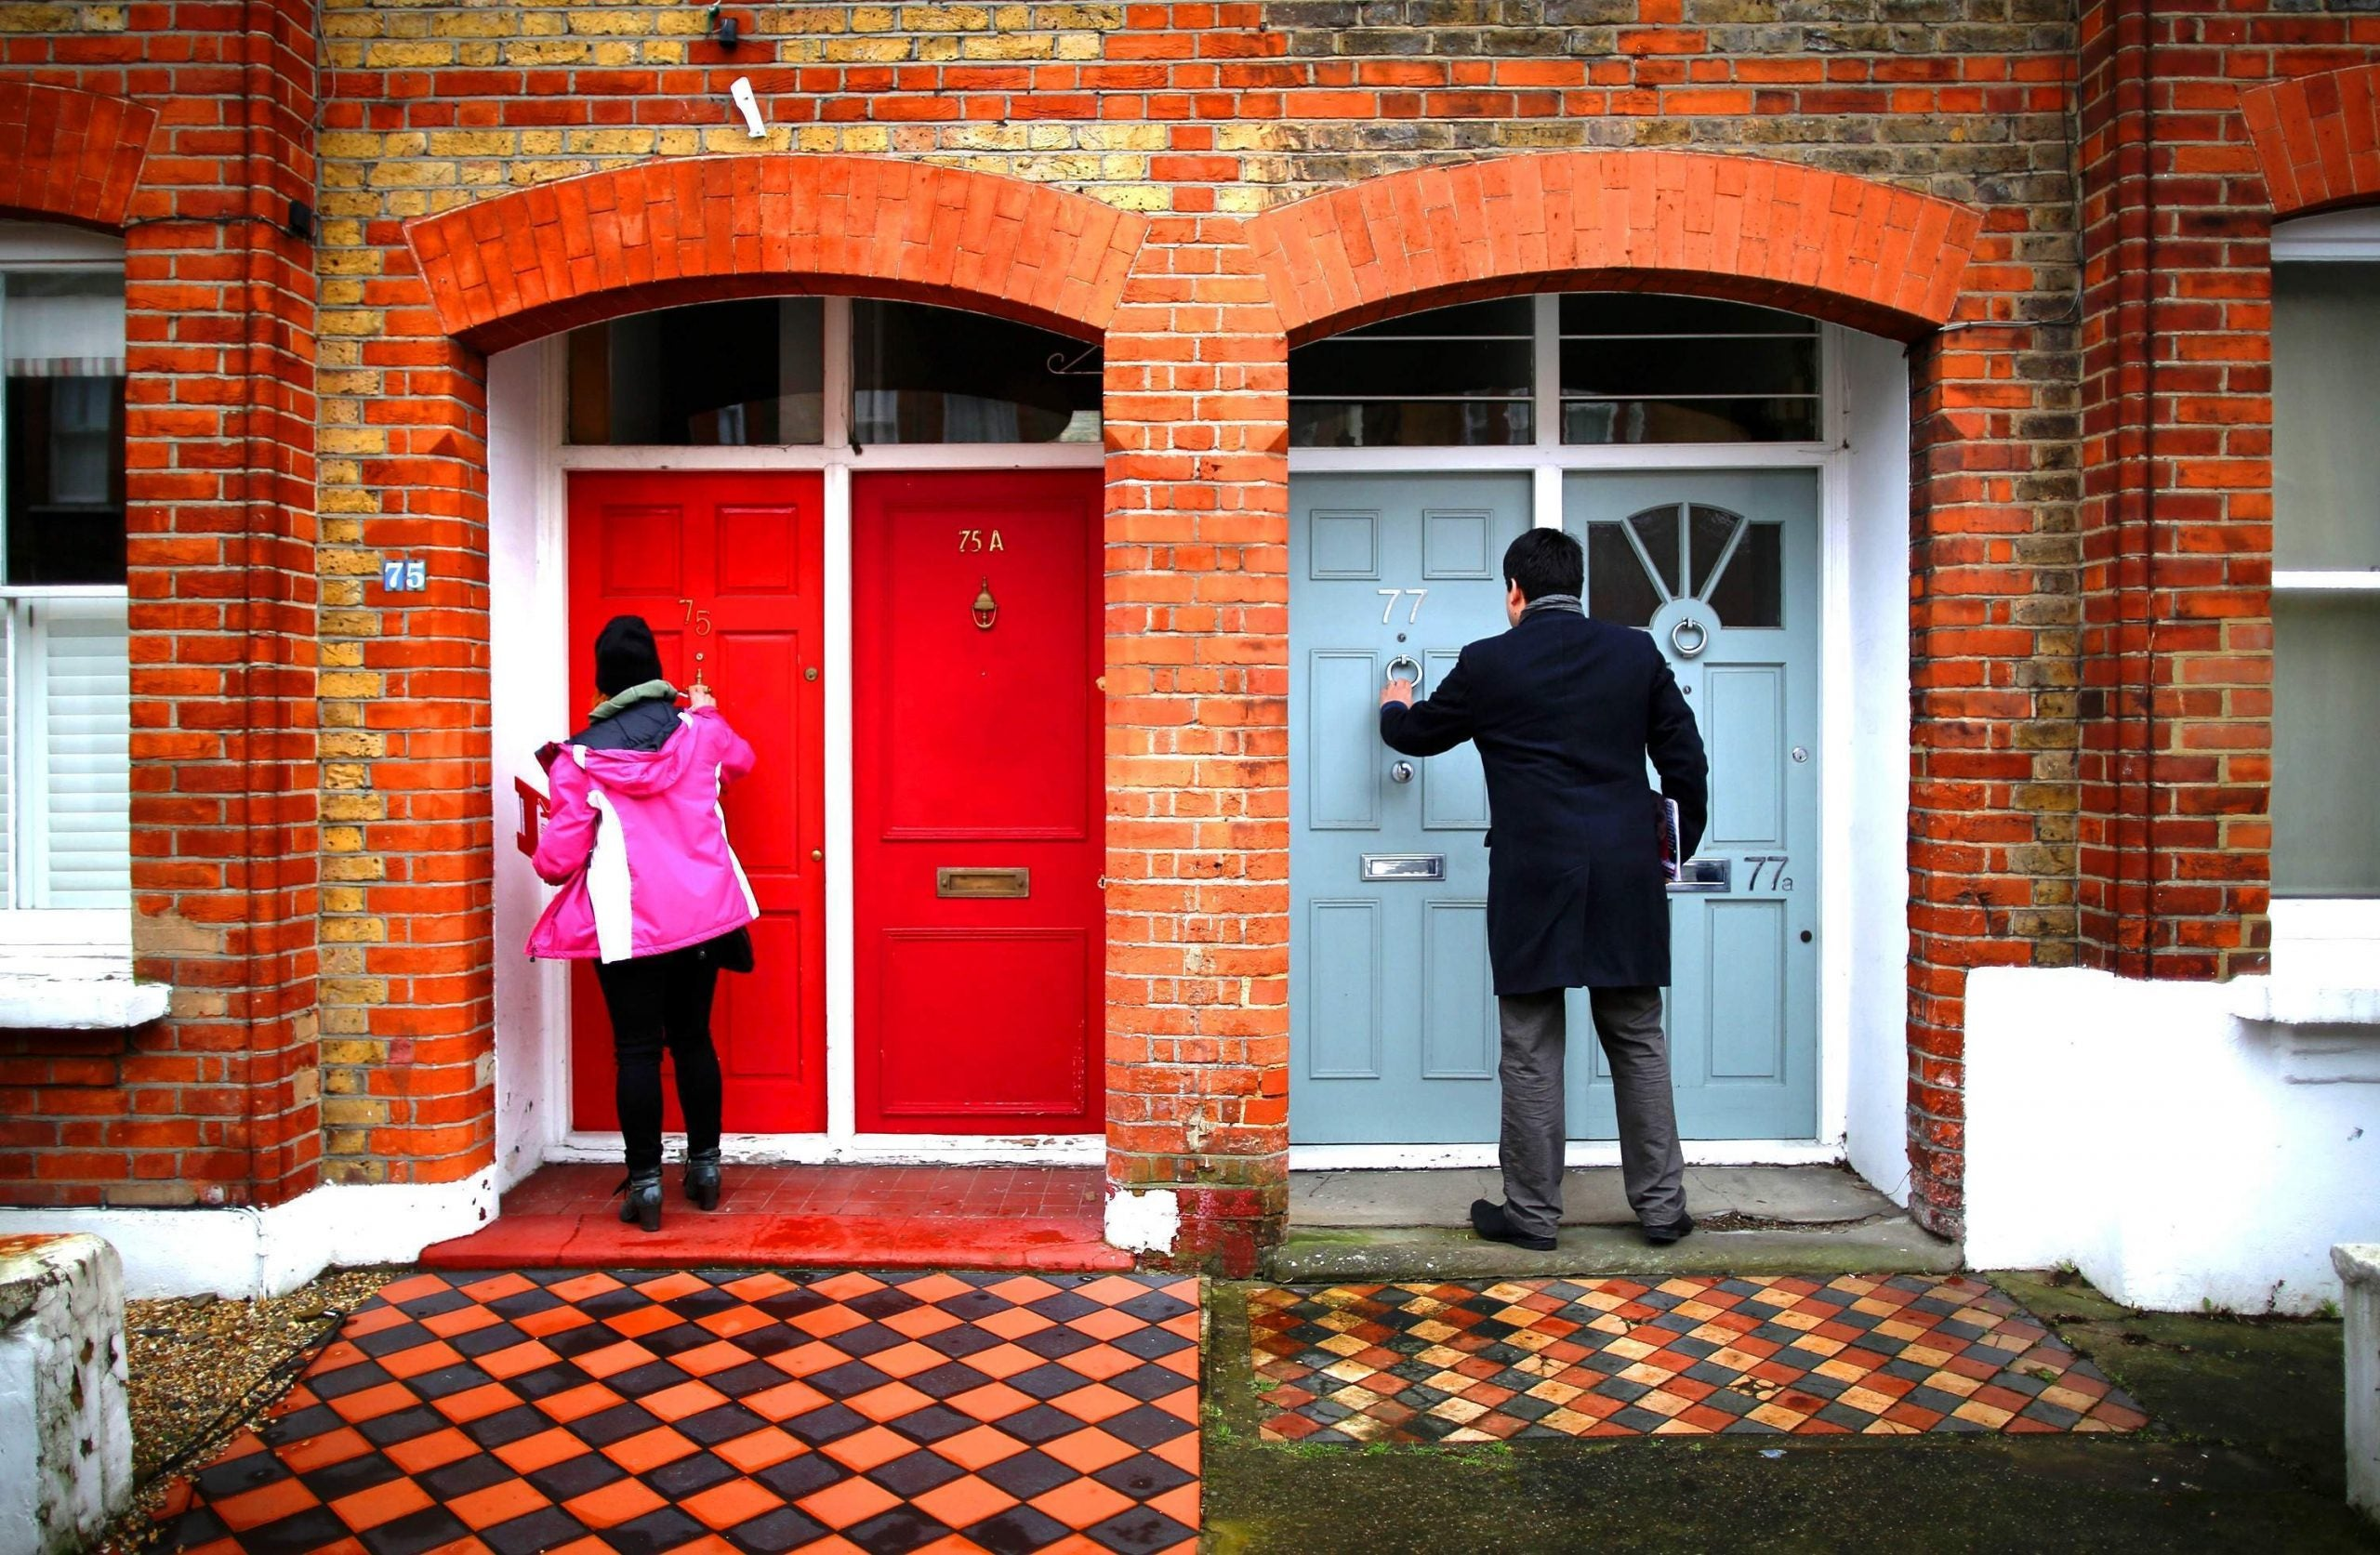 How I discovered the unexpected joys of canvassing